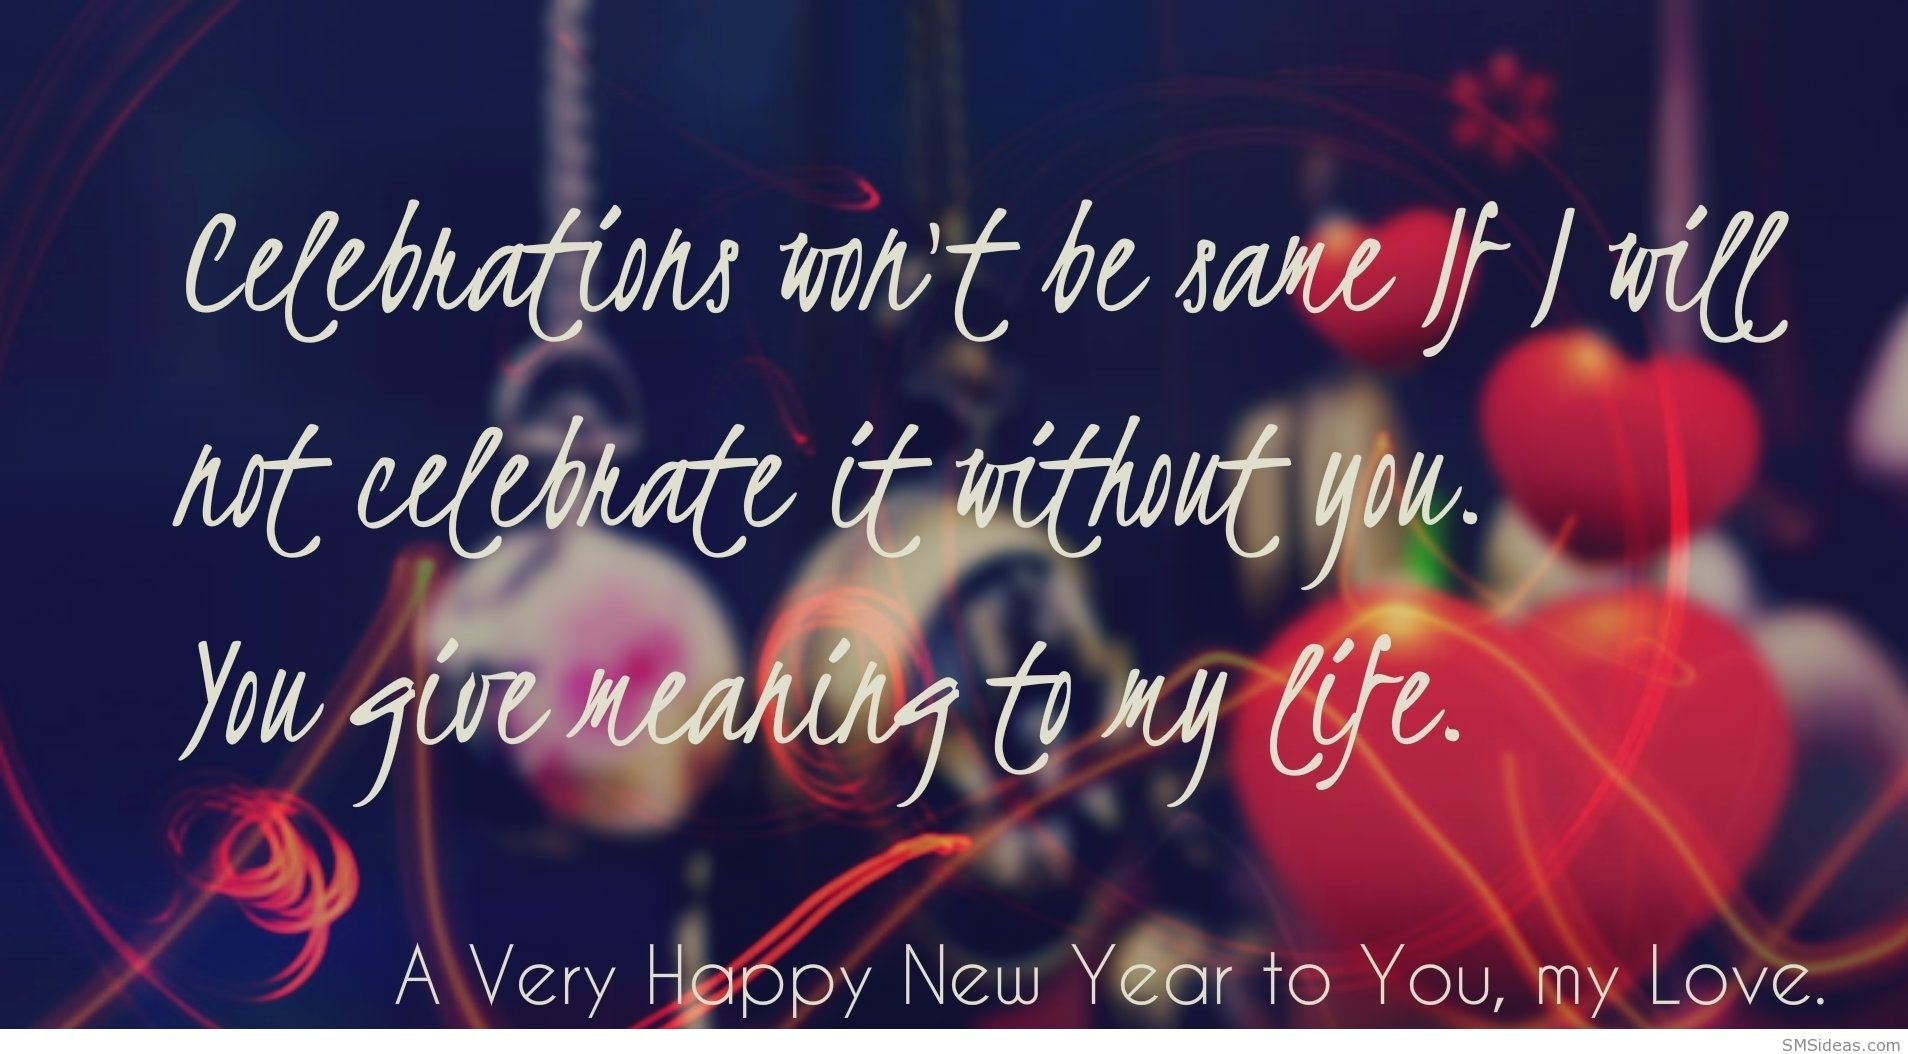 A very happy new year love sms happy new year pinterest a very happy new year love sms kristyandbryce Images